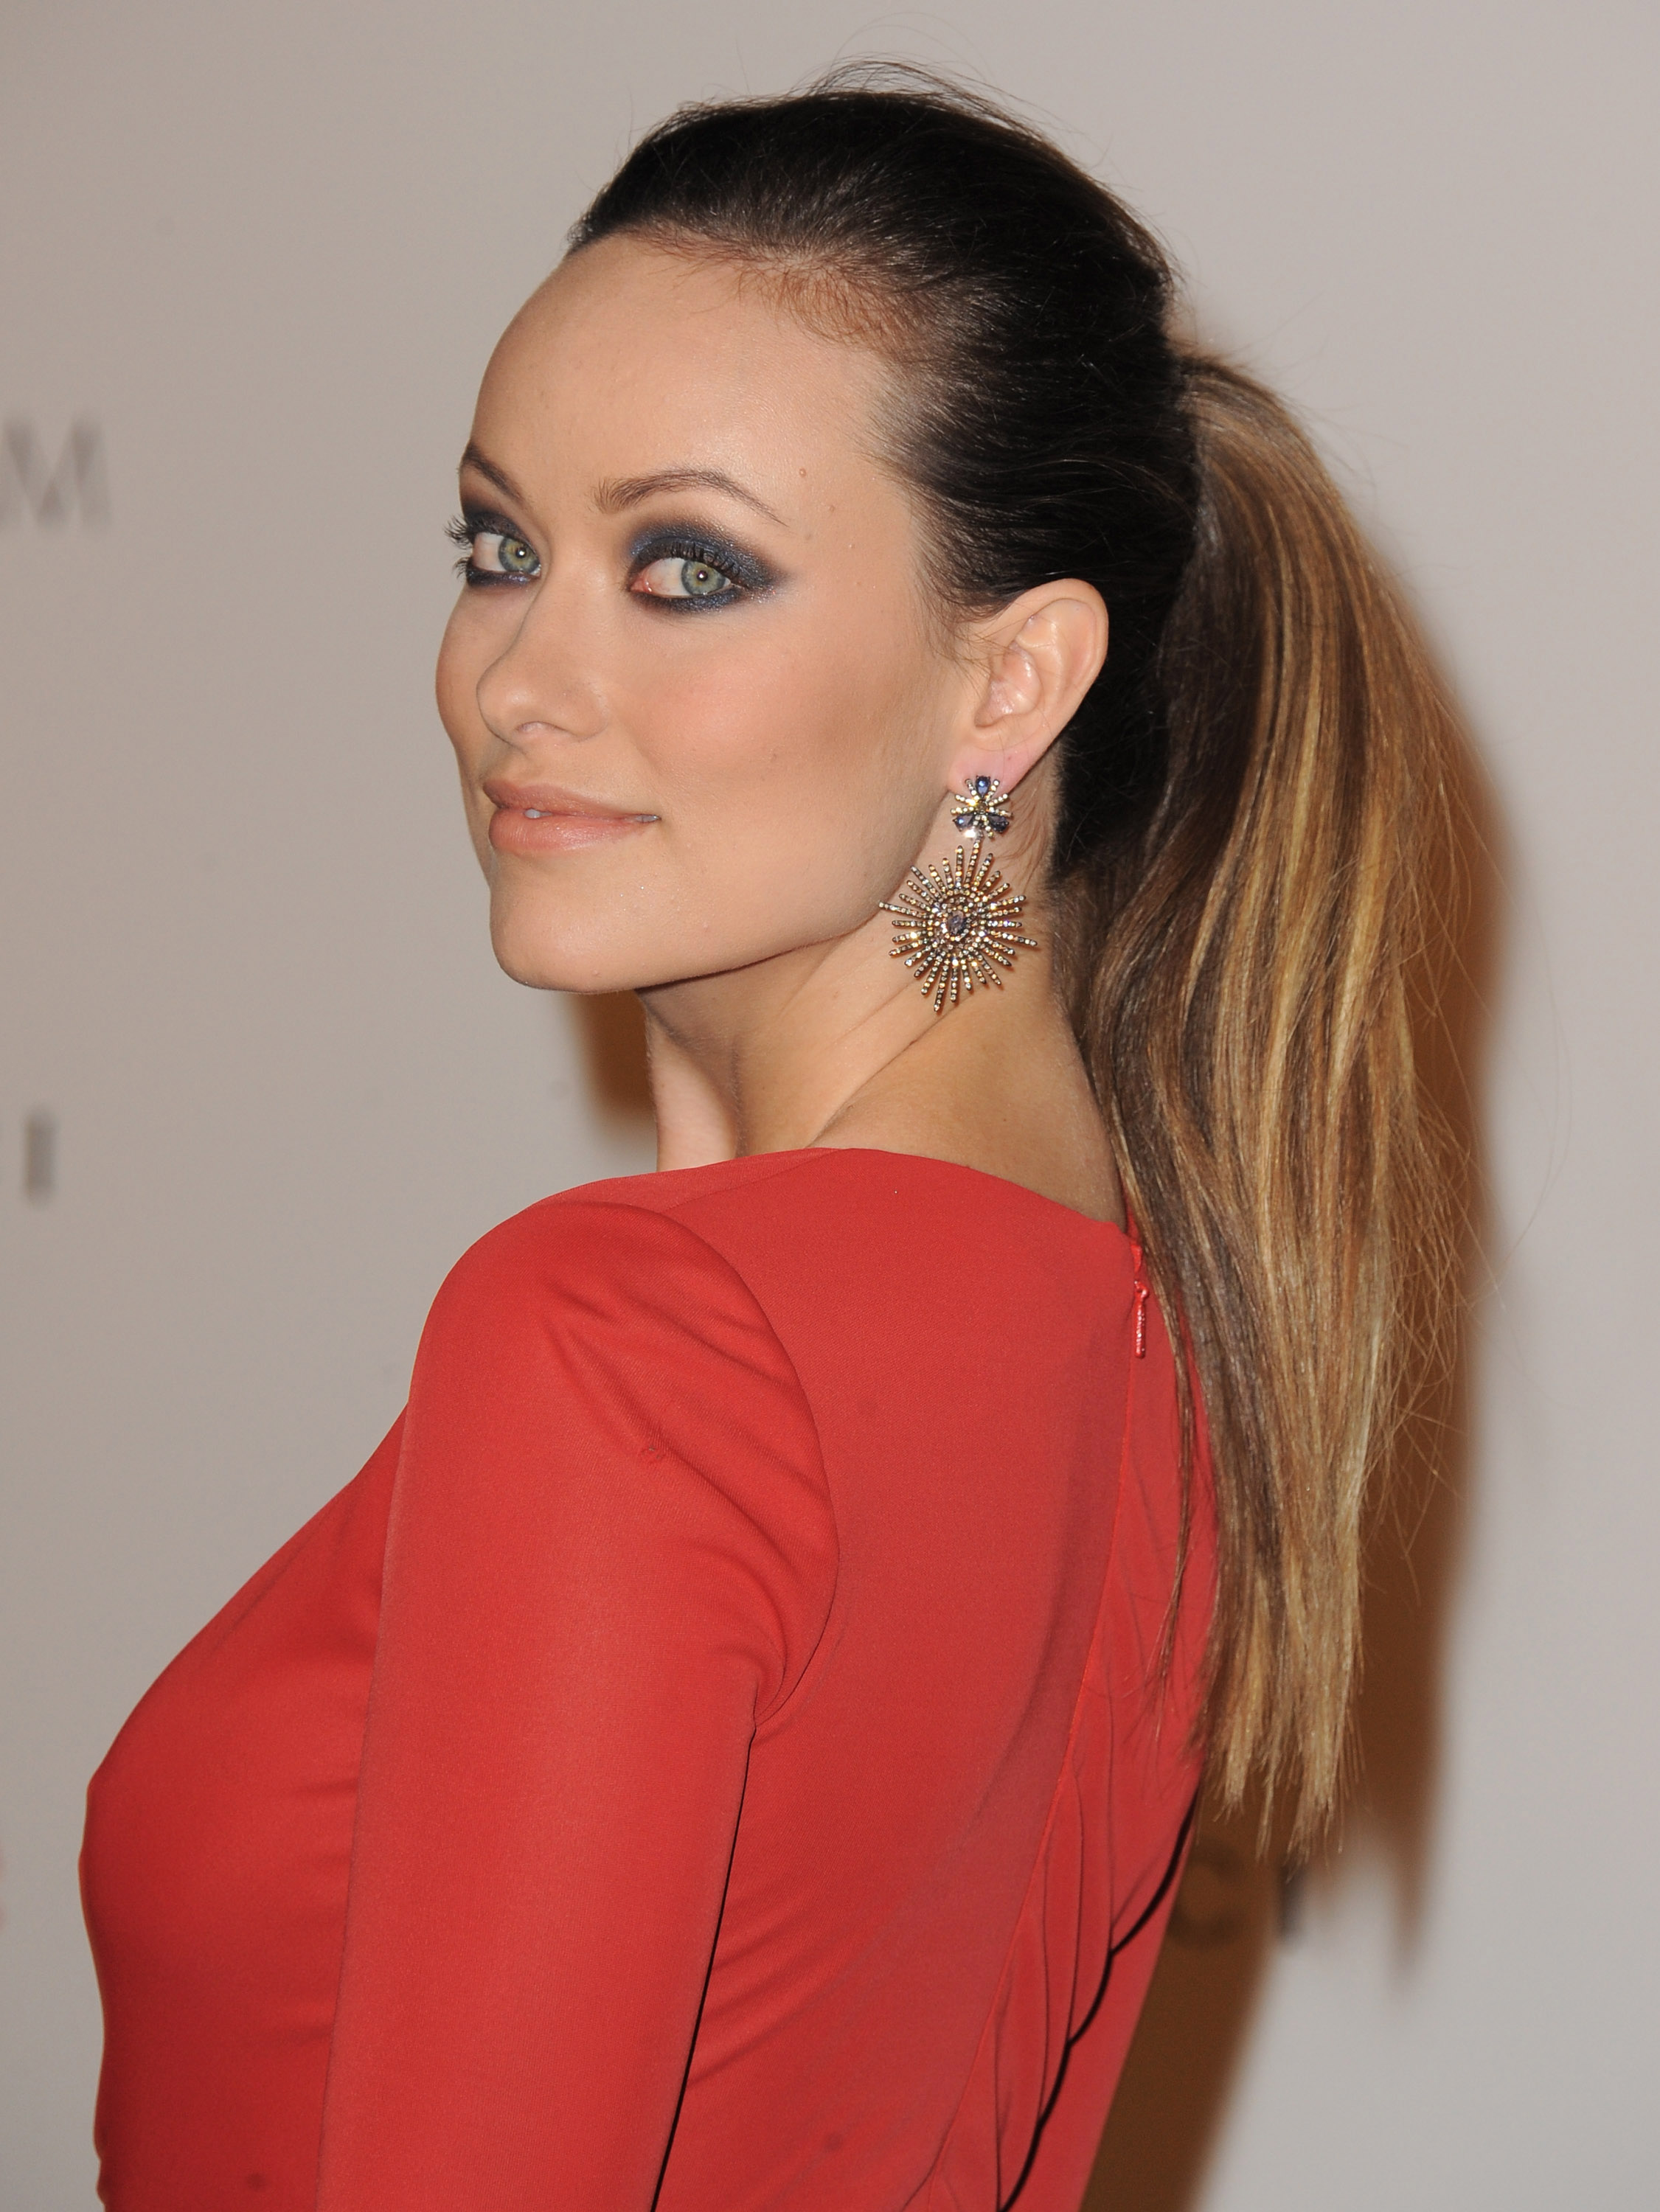 Olivia Wilde with smokey eyes.